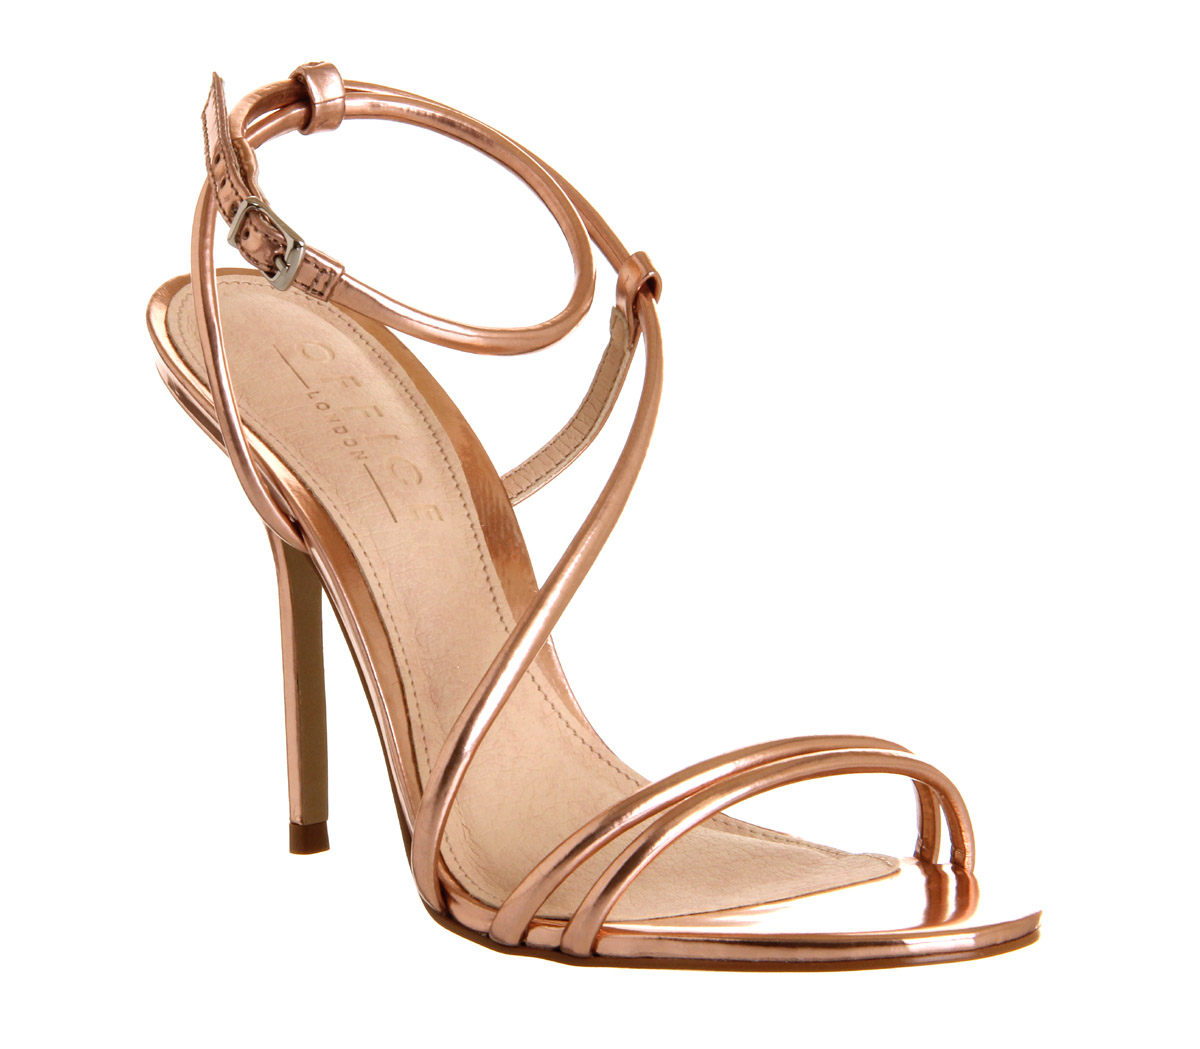 Womens Office Jools Strappy Sandal ROSE GOLD Heels | eBay